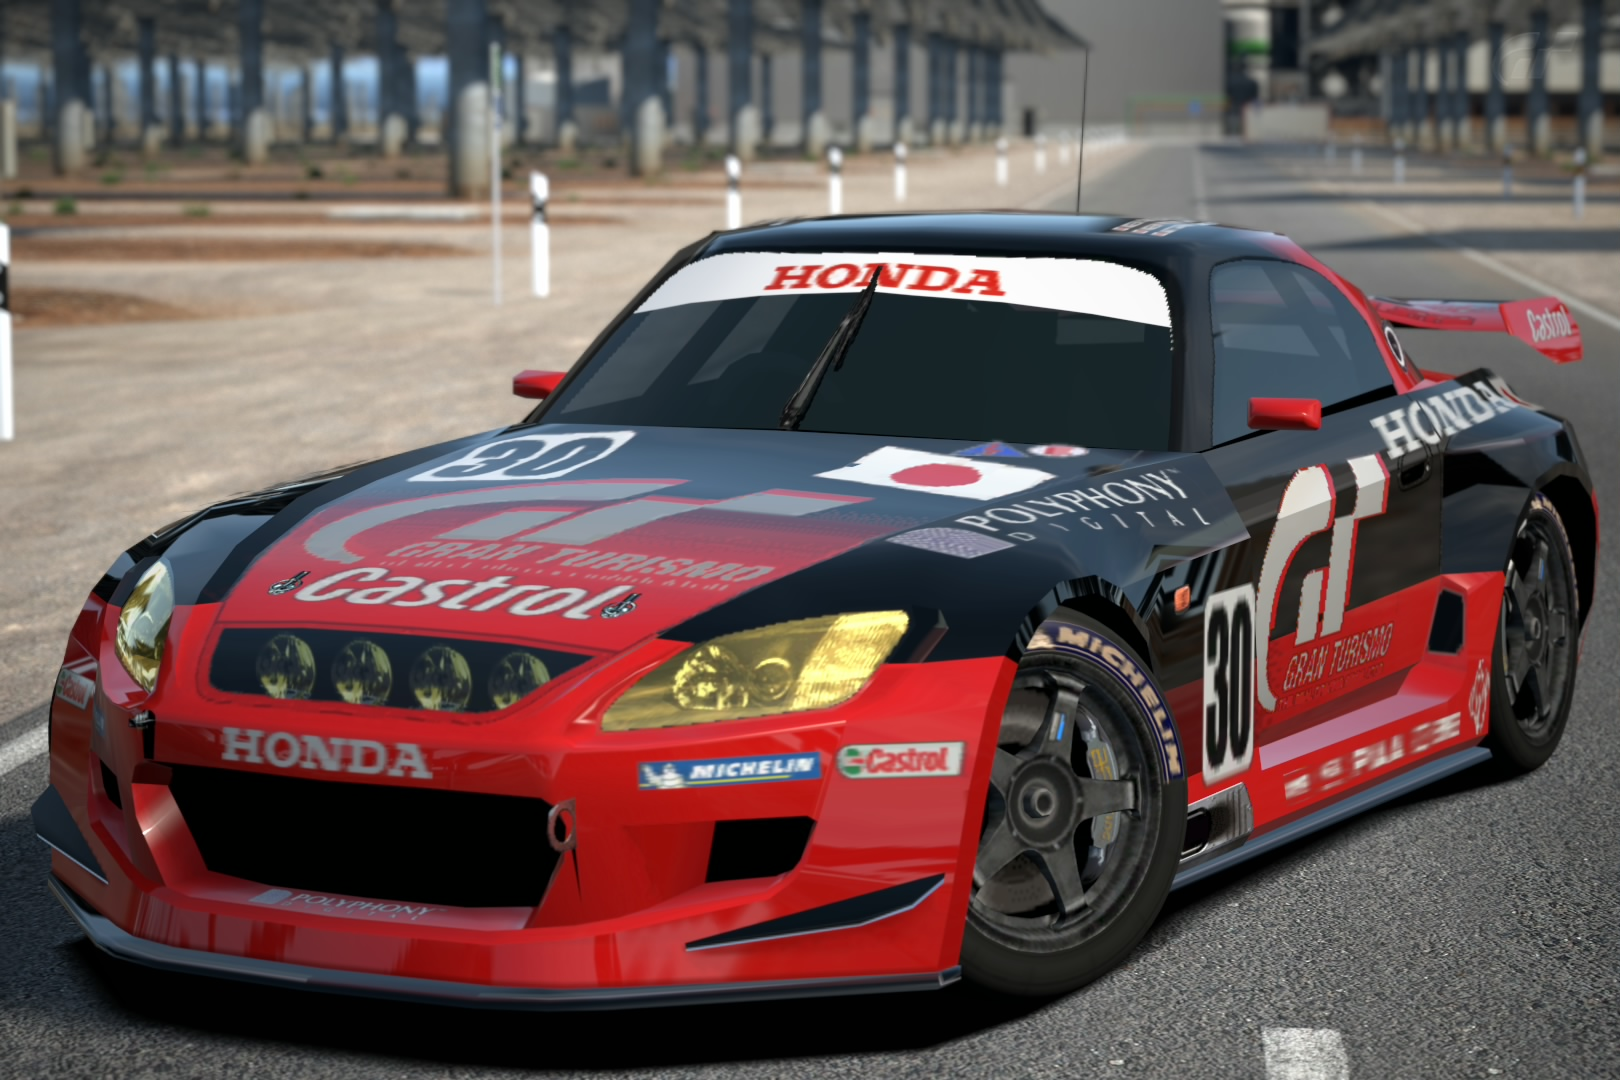 honda s2000 lm race car gran turismo wiki fandom powered by wikia. Black Bedroom Furniture Sets. Home Design Ideas